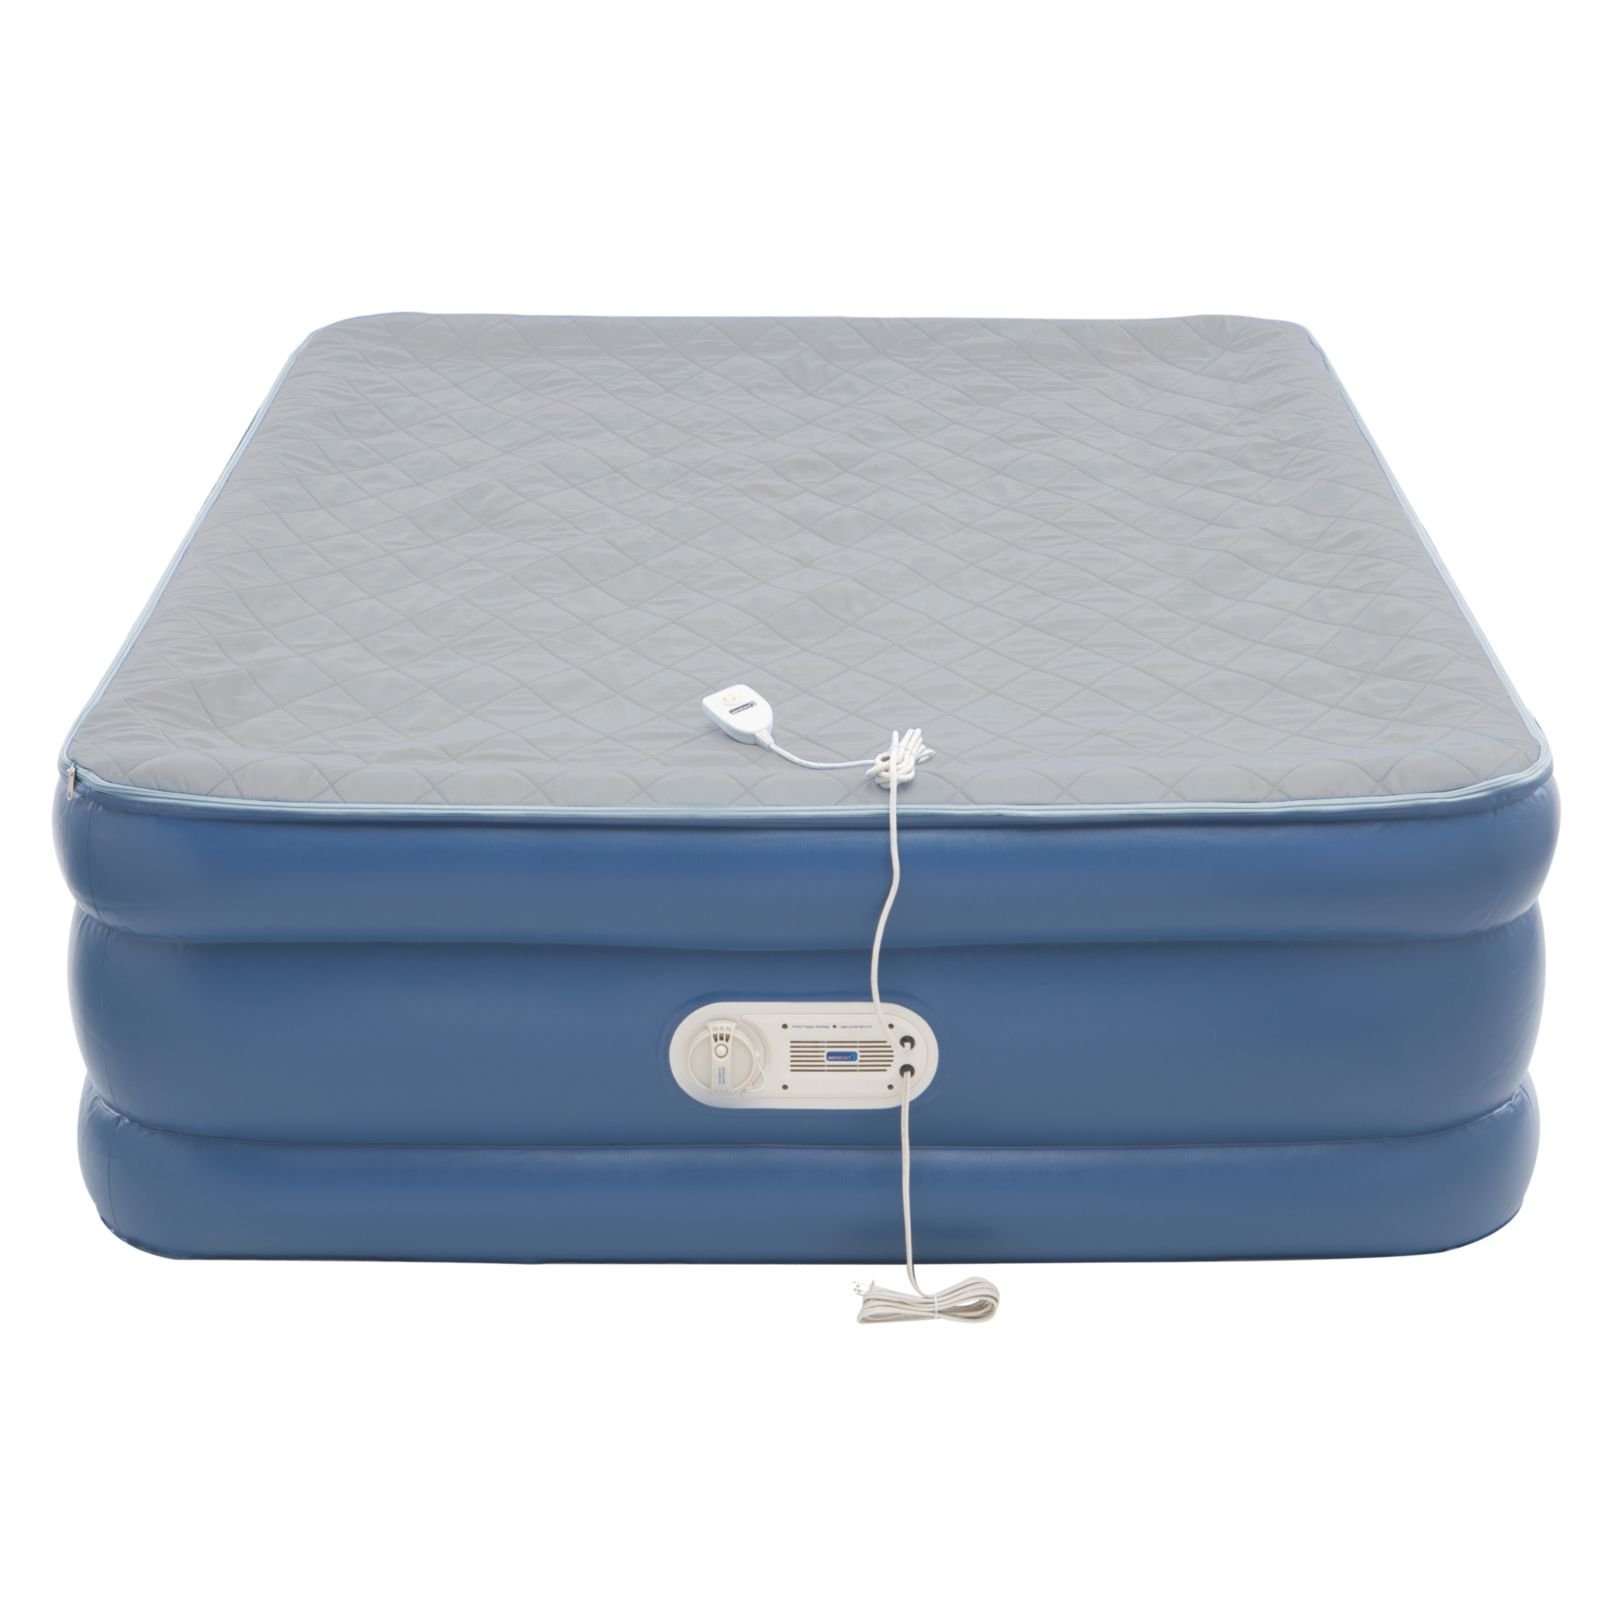 AeroBed Quilted Foam Topper Air Mattress, Queen by AeroBed (Image #2)